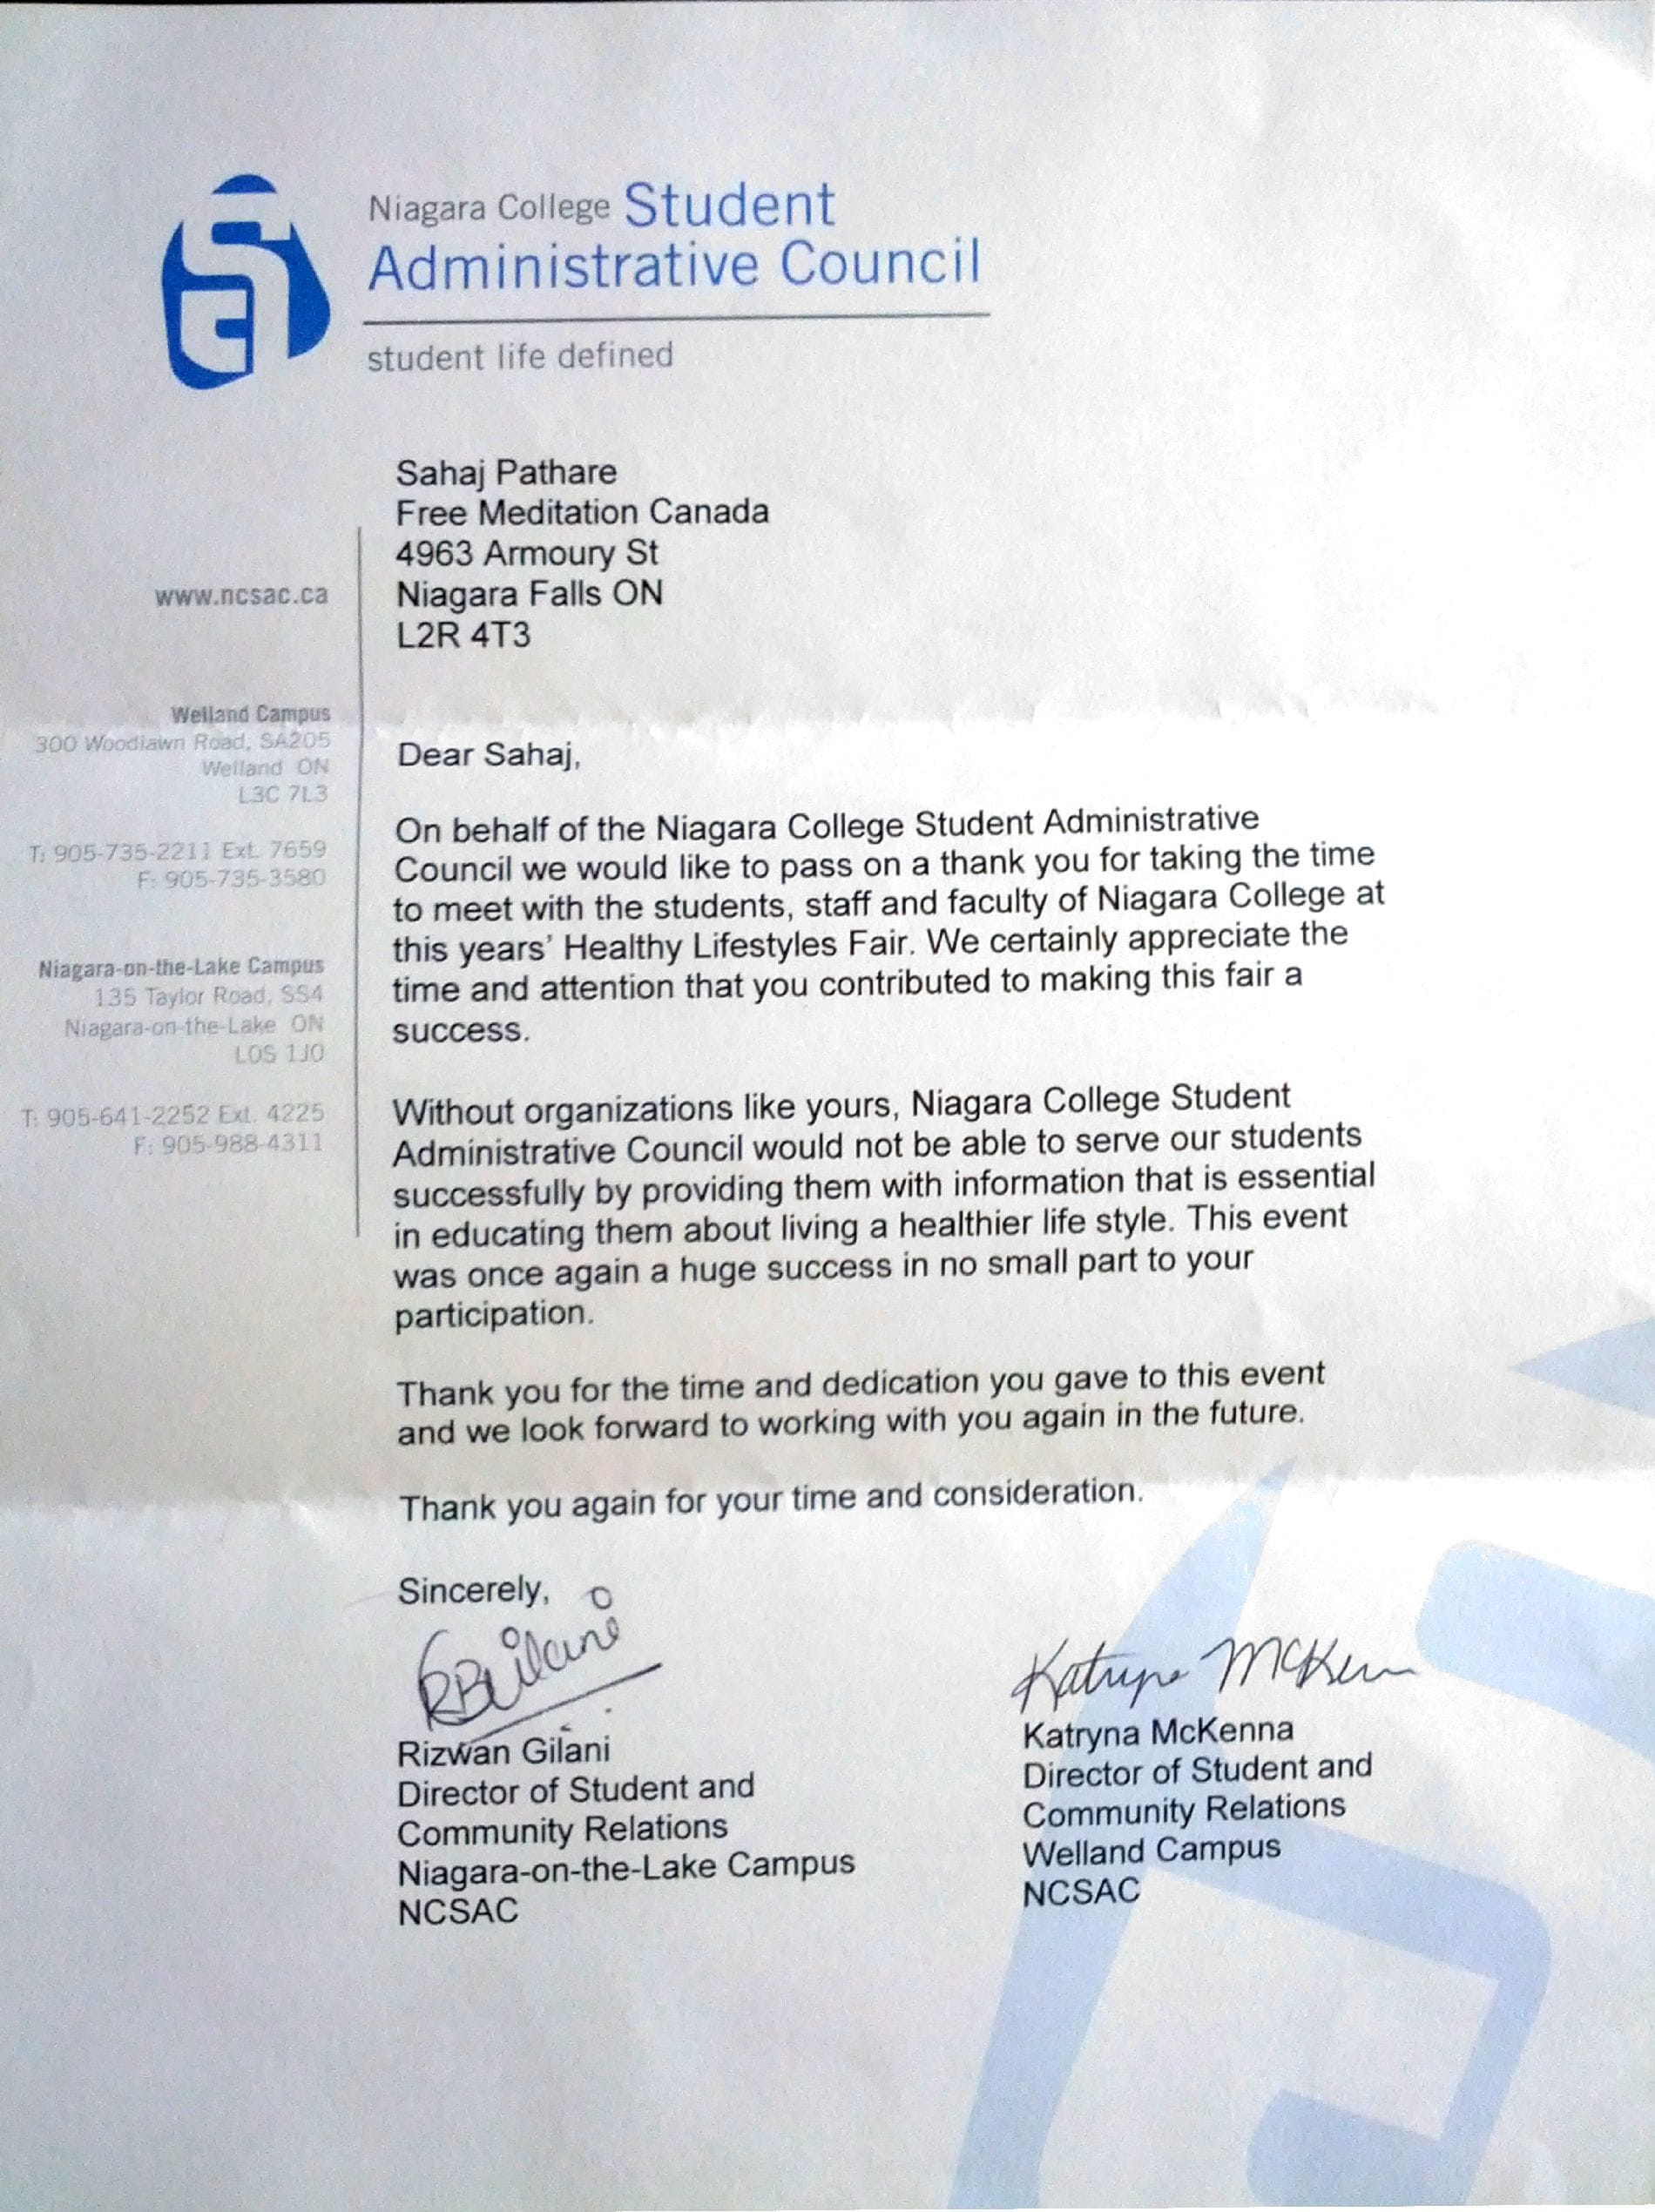 Appreciation letter from Niagara College -2013